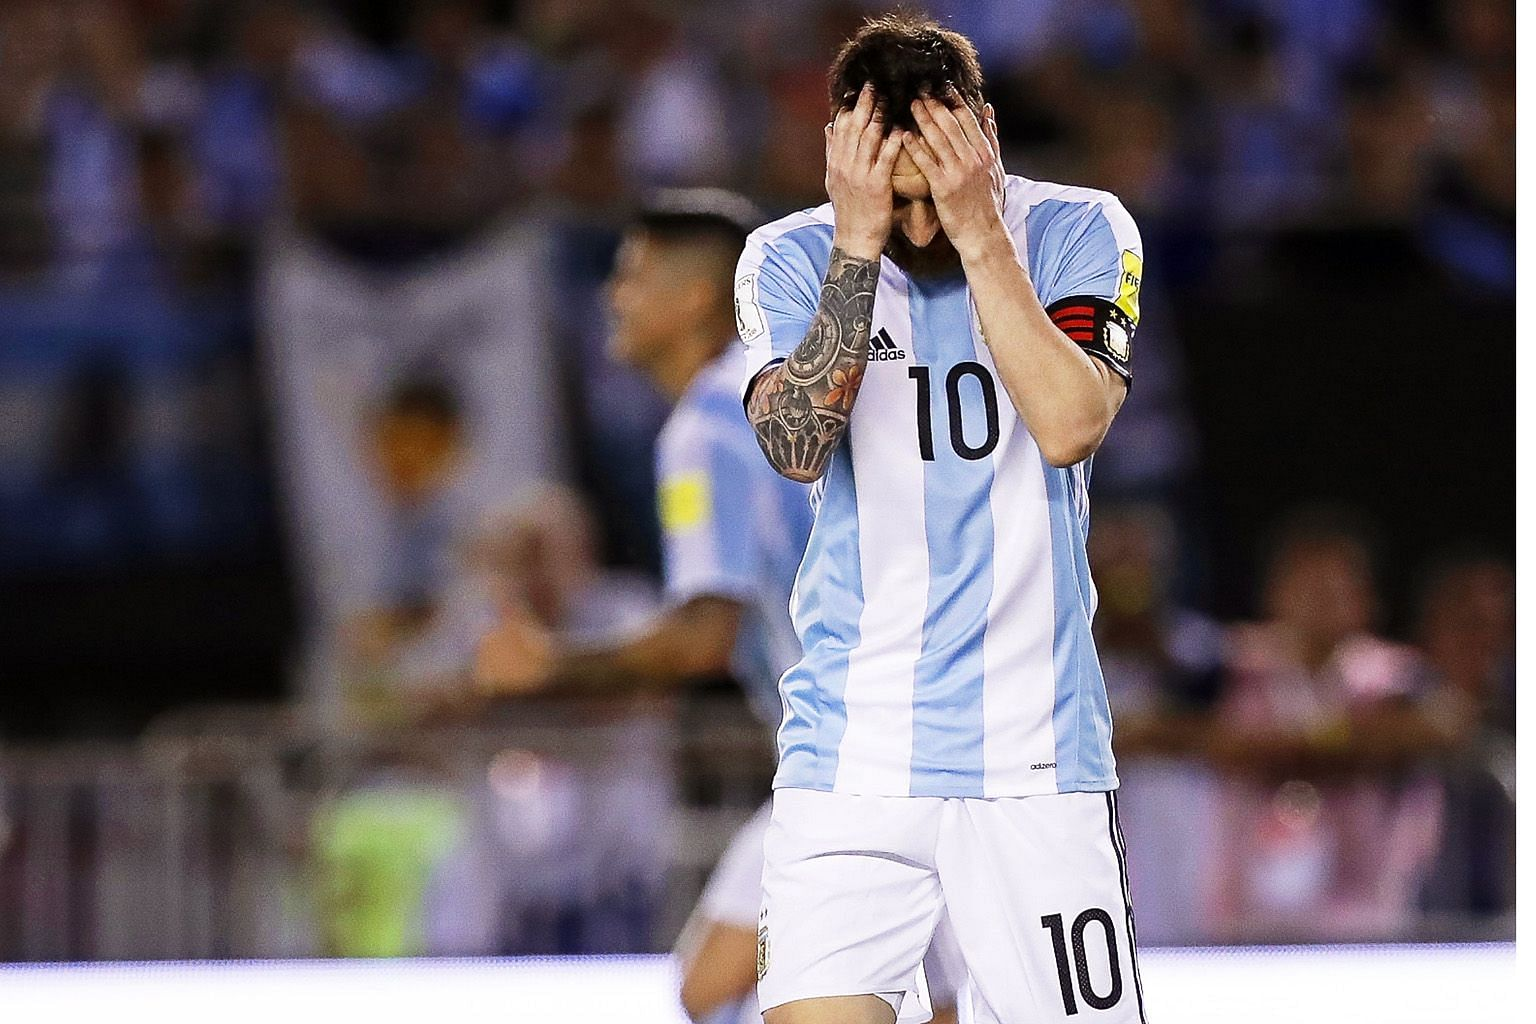 Argentina's Lionel Messi during the World Cup qualifier against Chile on March 23, after which he was banned for four international matches for insulting an assistant referee.